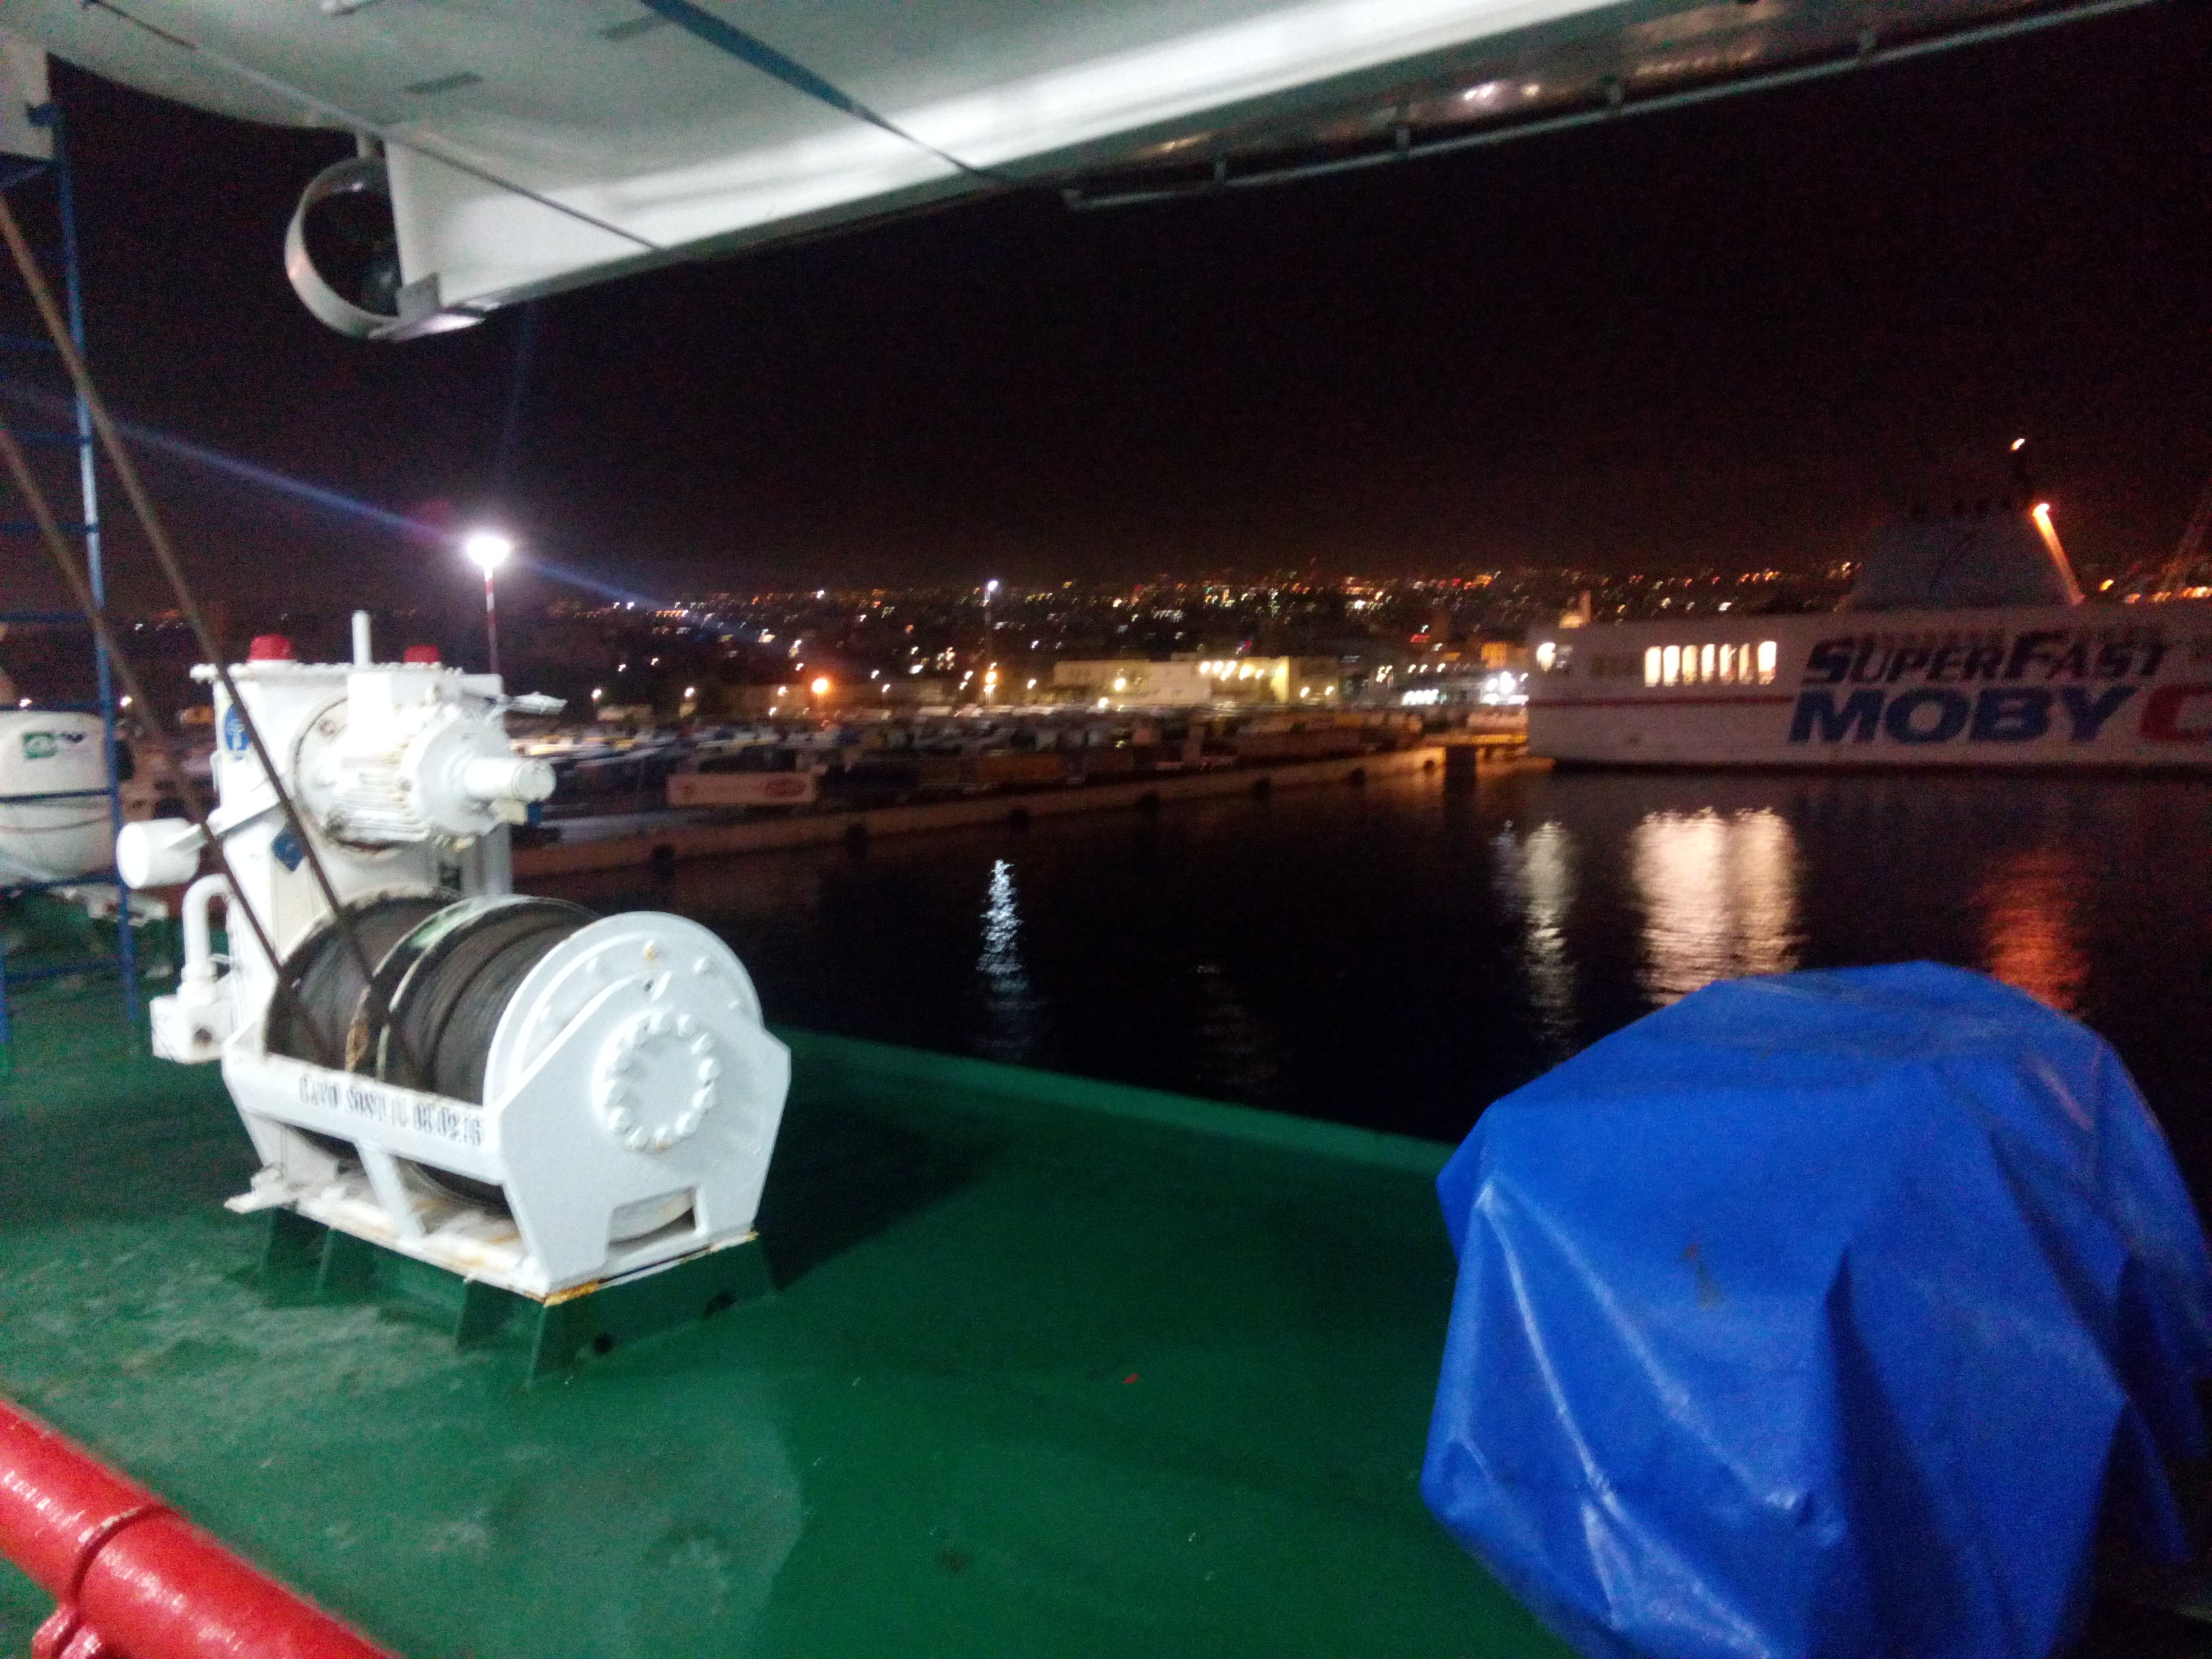 A green ferry deck with a white rope turning device. Black water and city lights in the background.